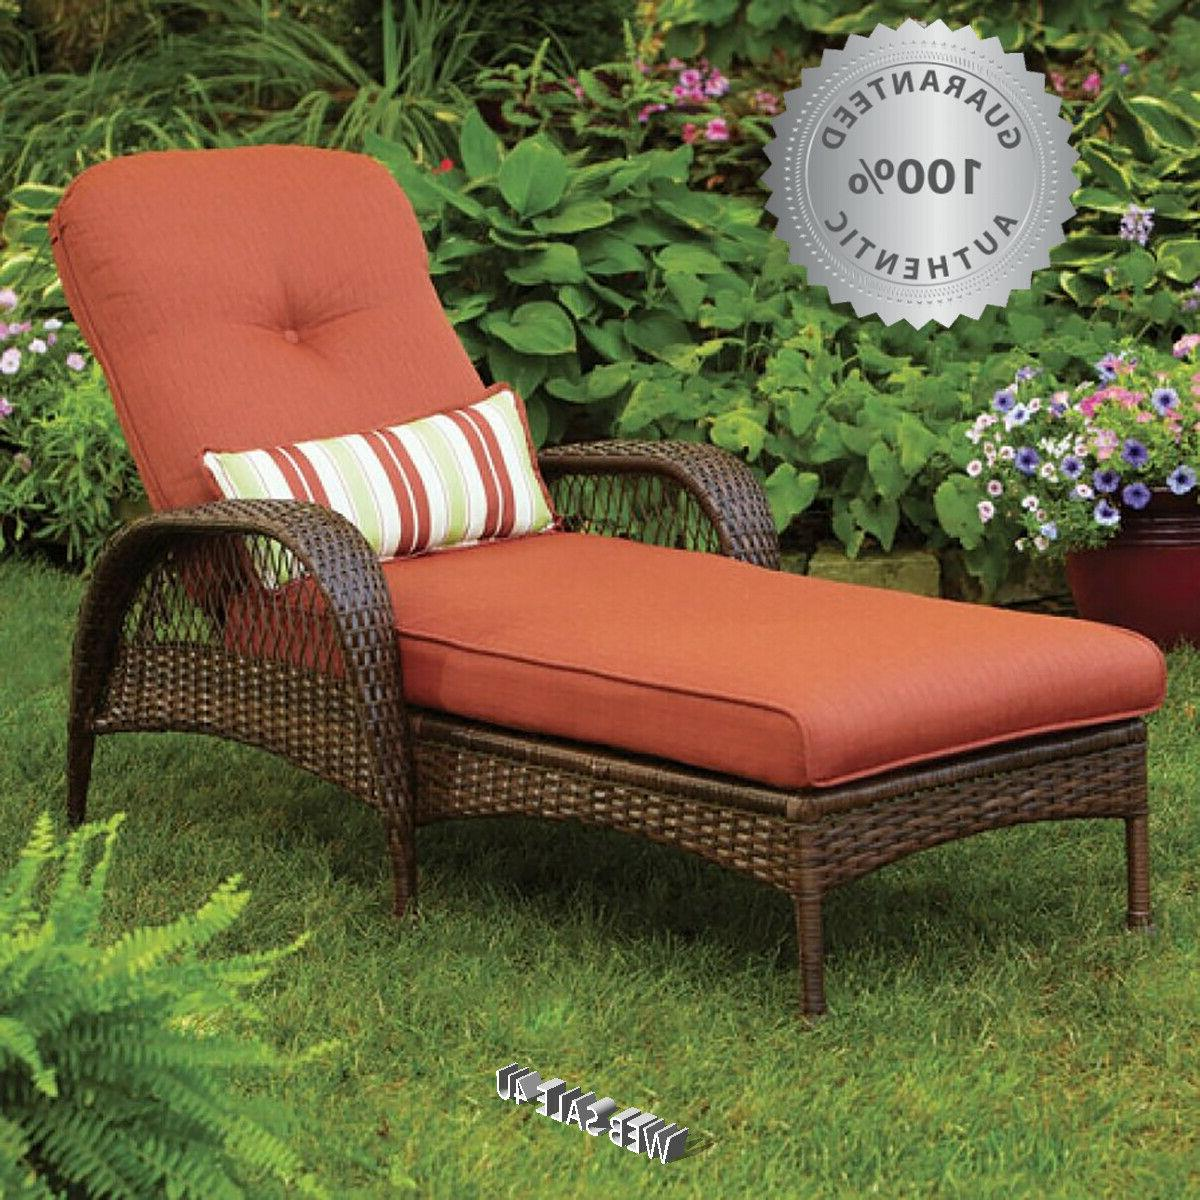 Outdoor Recliner Chaise Lounge Cushion Deluxe Patio Wicker F